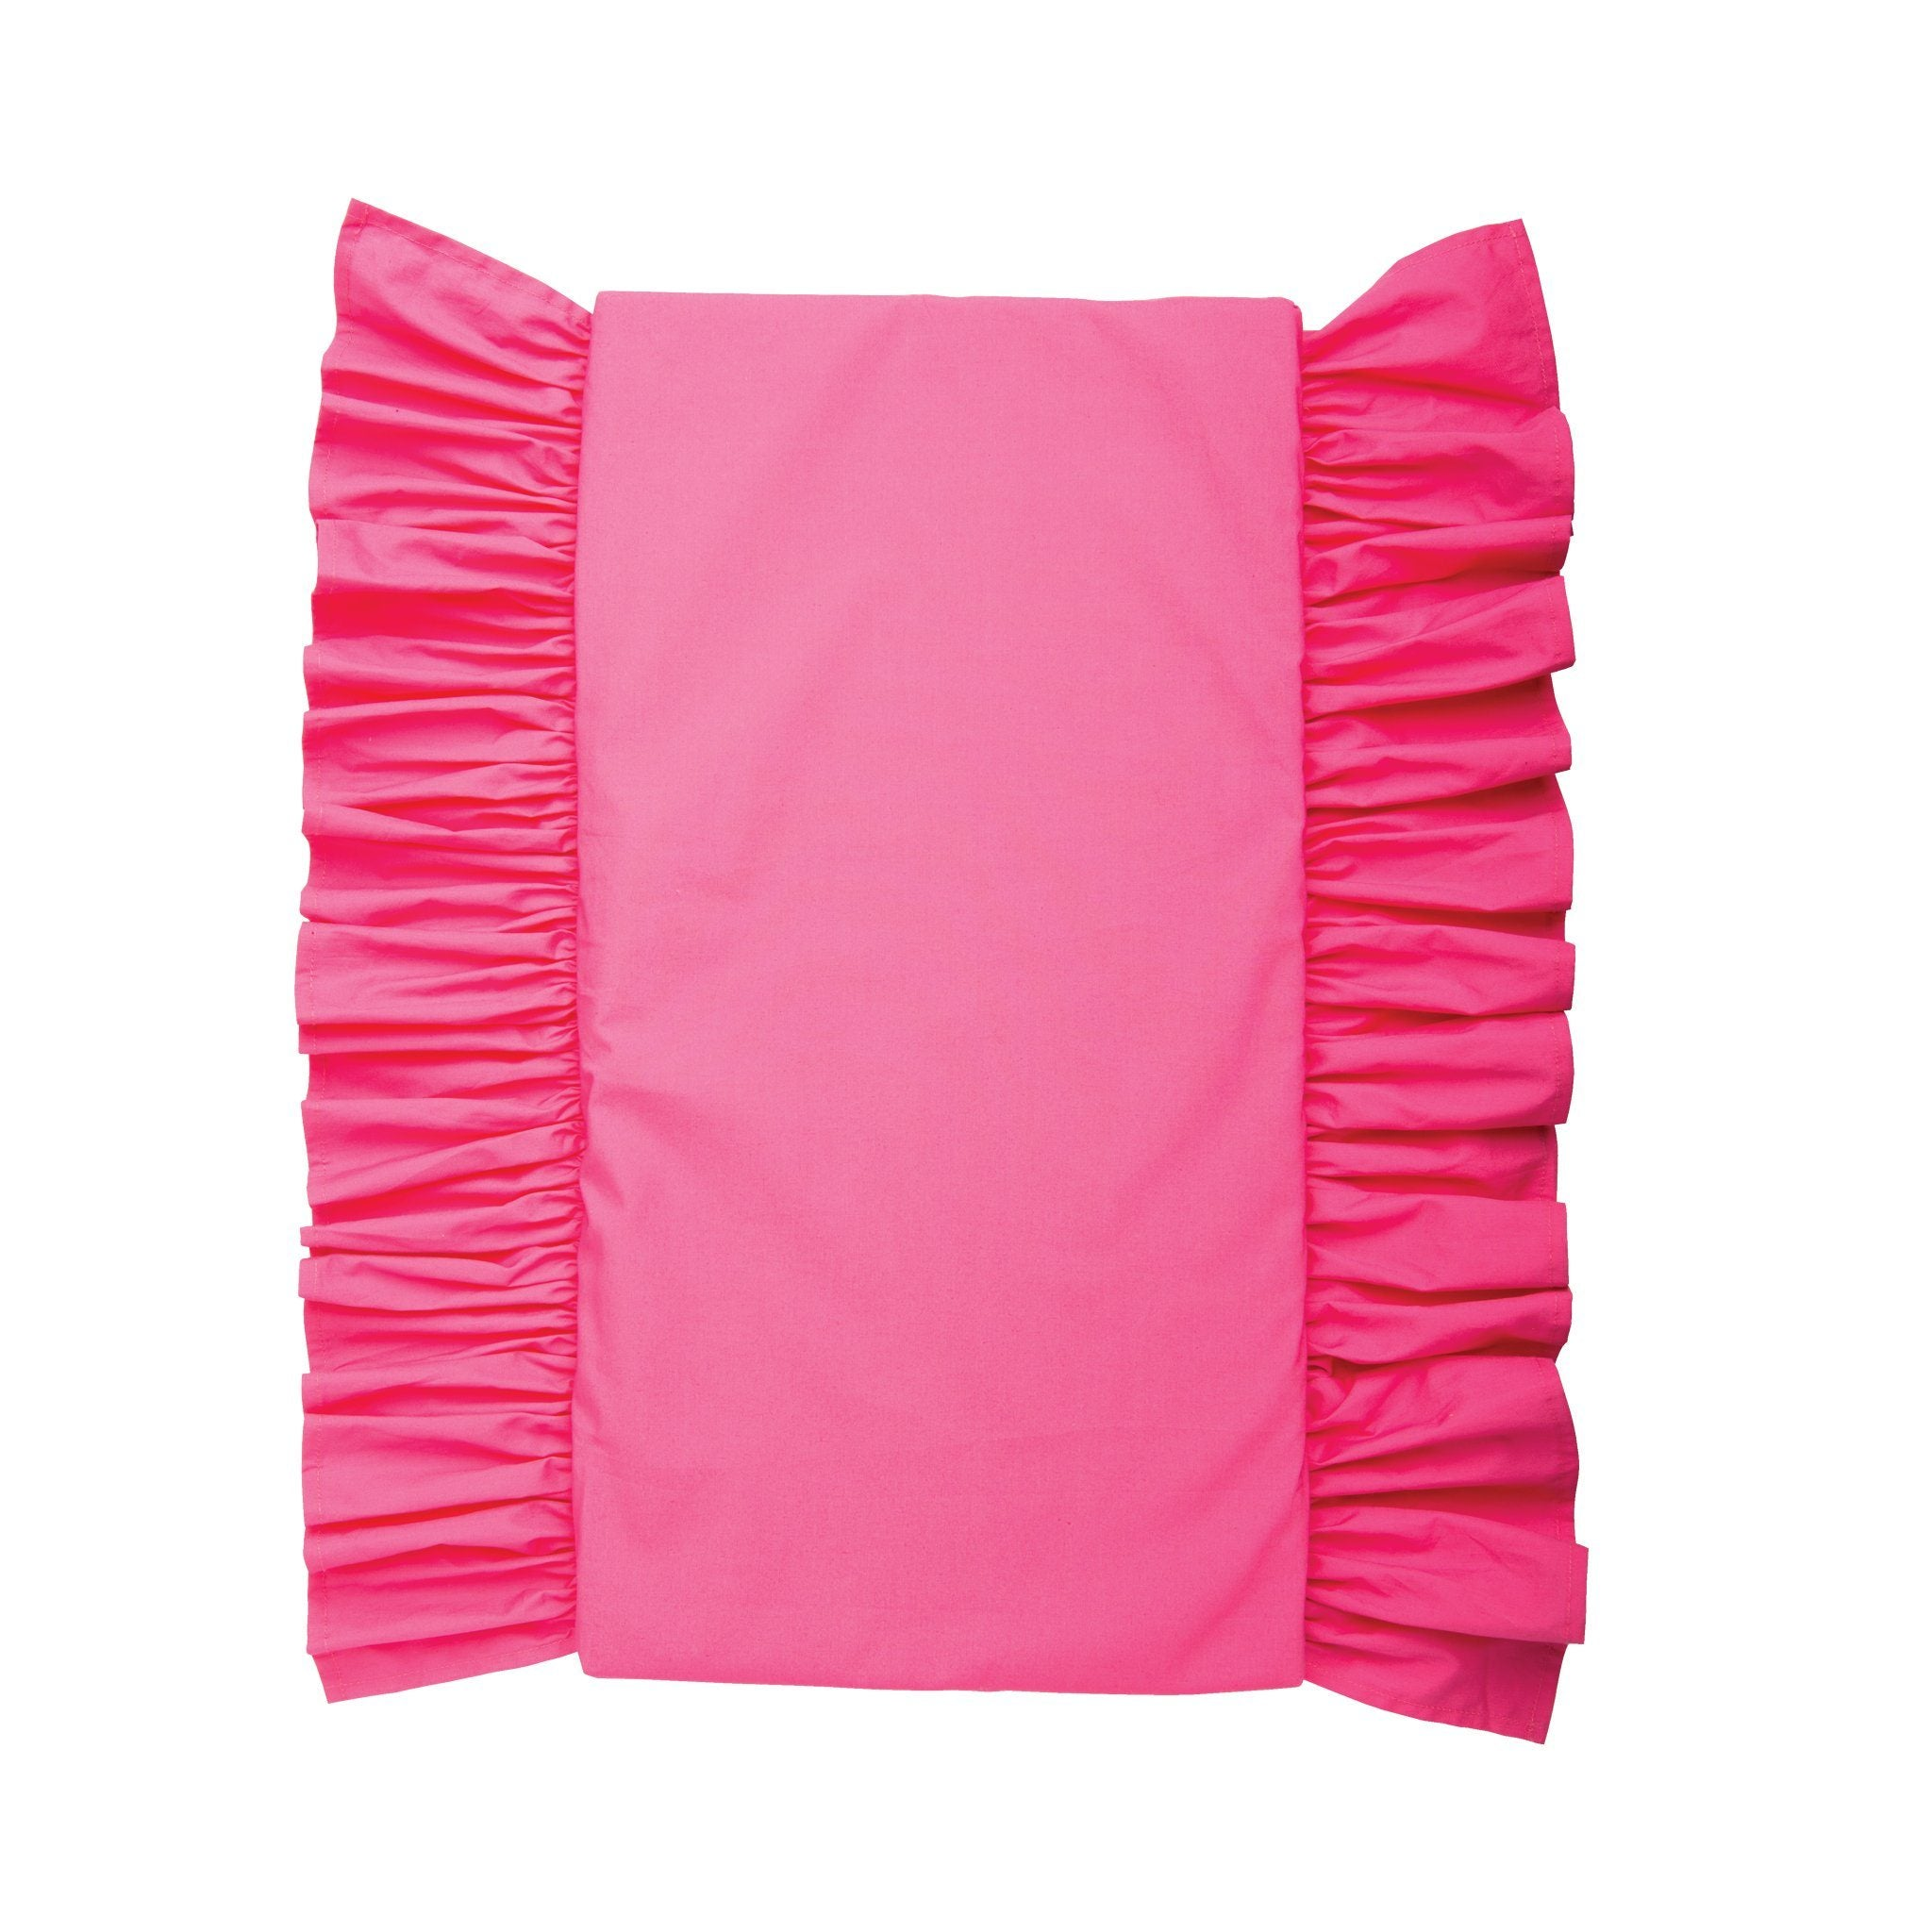 Field of flowers fuchsia covered mattress with ruffle for all 18 inch dolls.